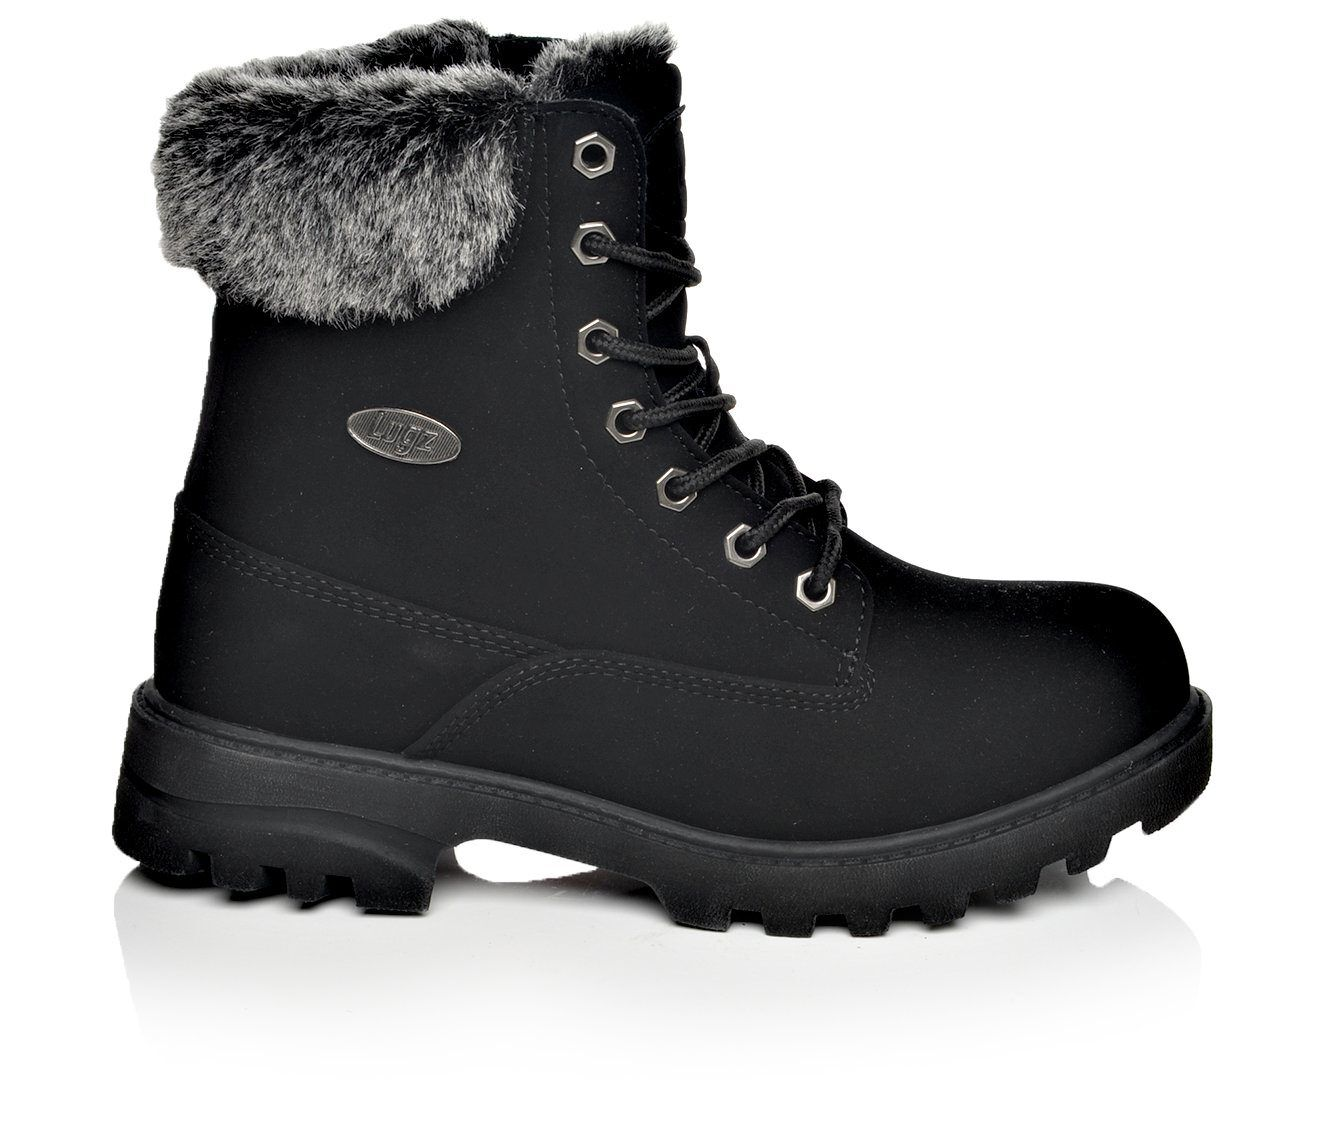 Enchanting Women's Lugz Empire Hi Fur Hiking Boots Black/Charcoal